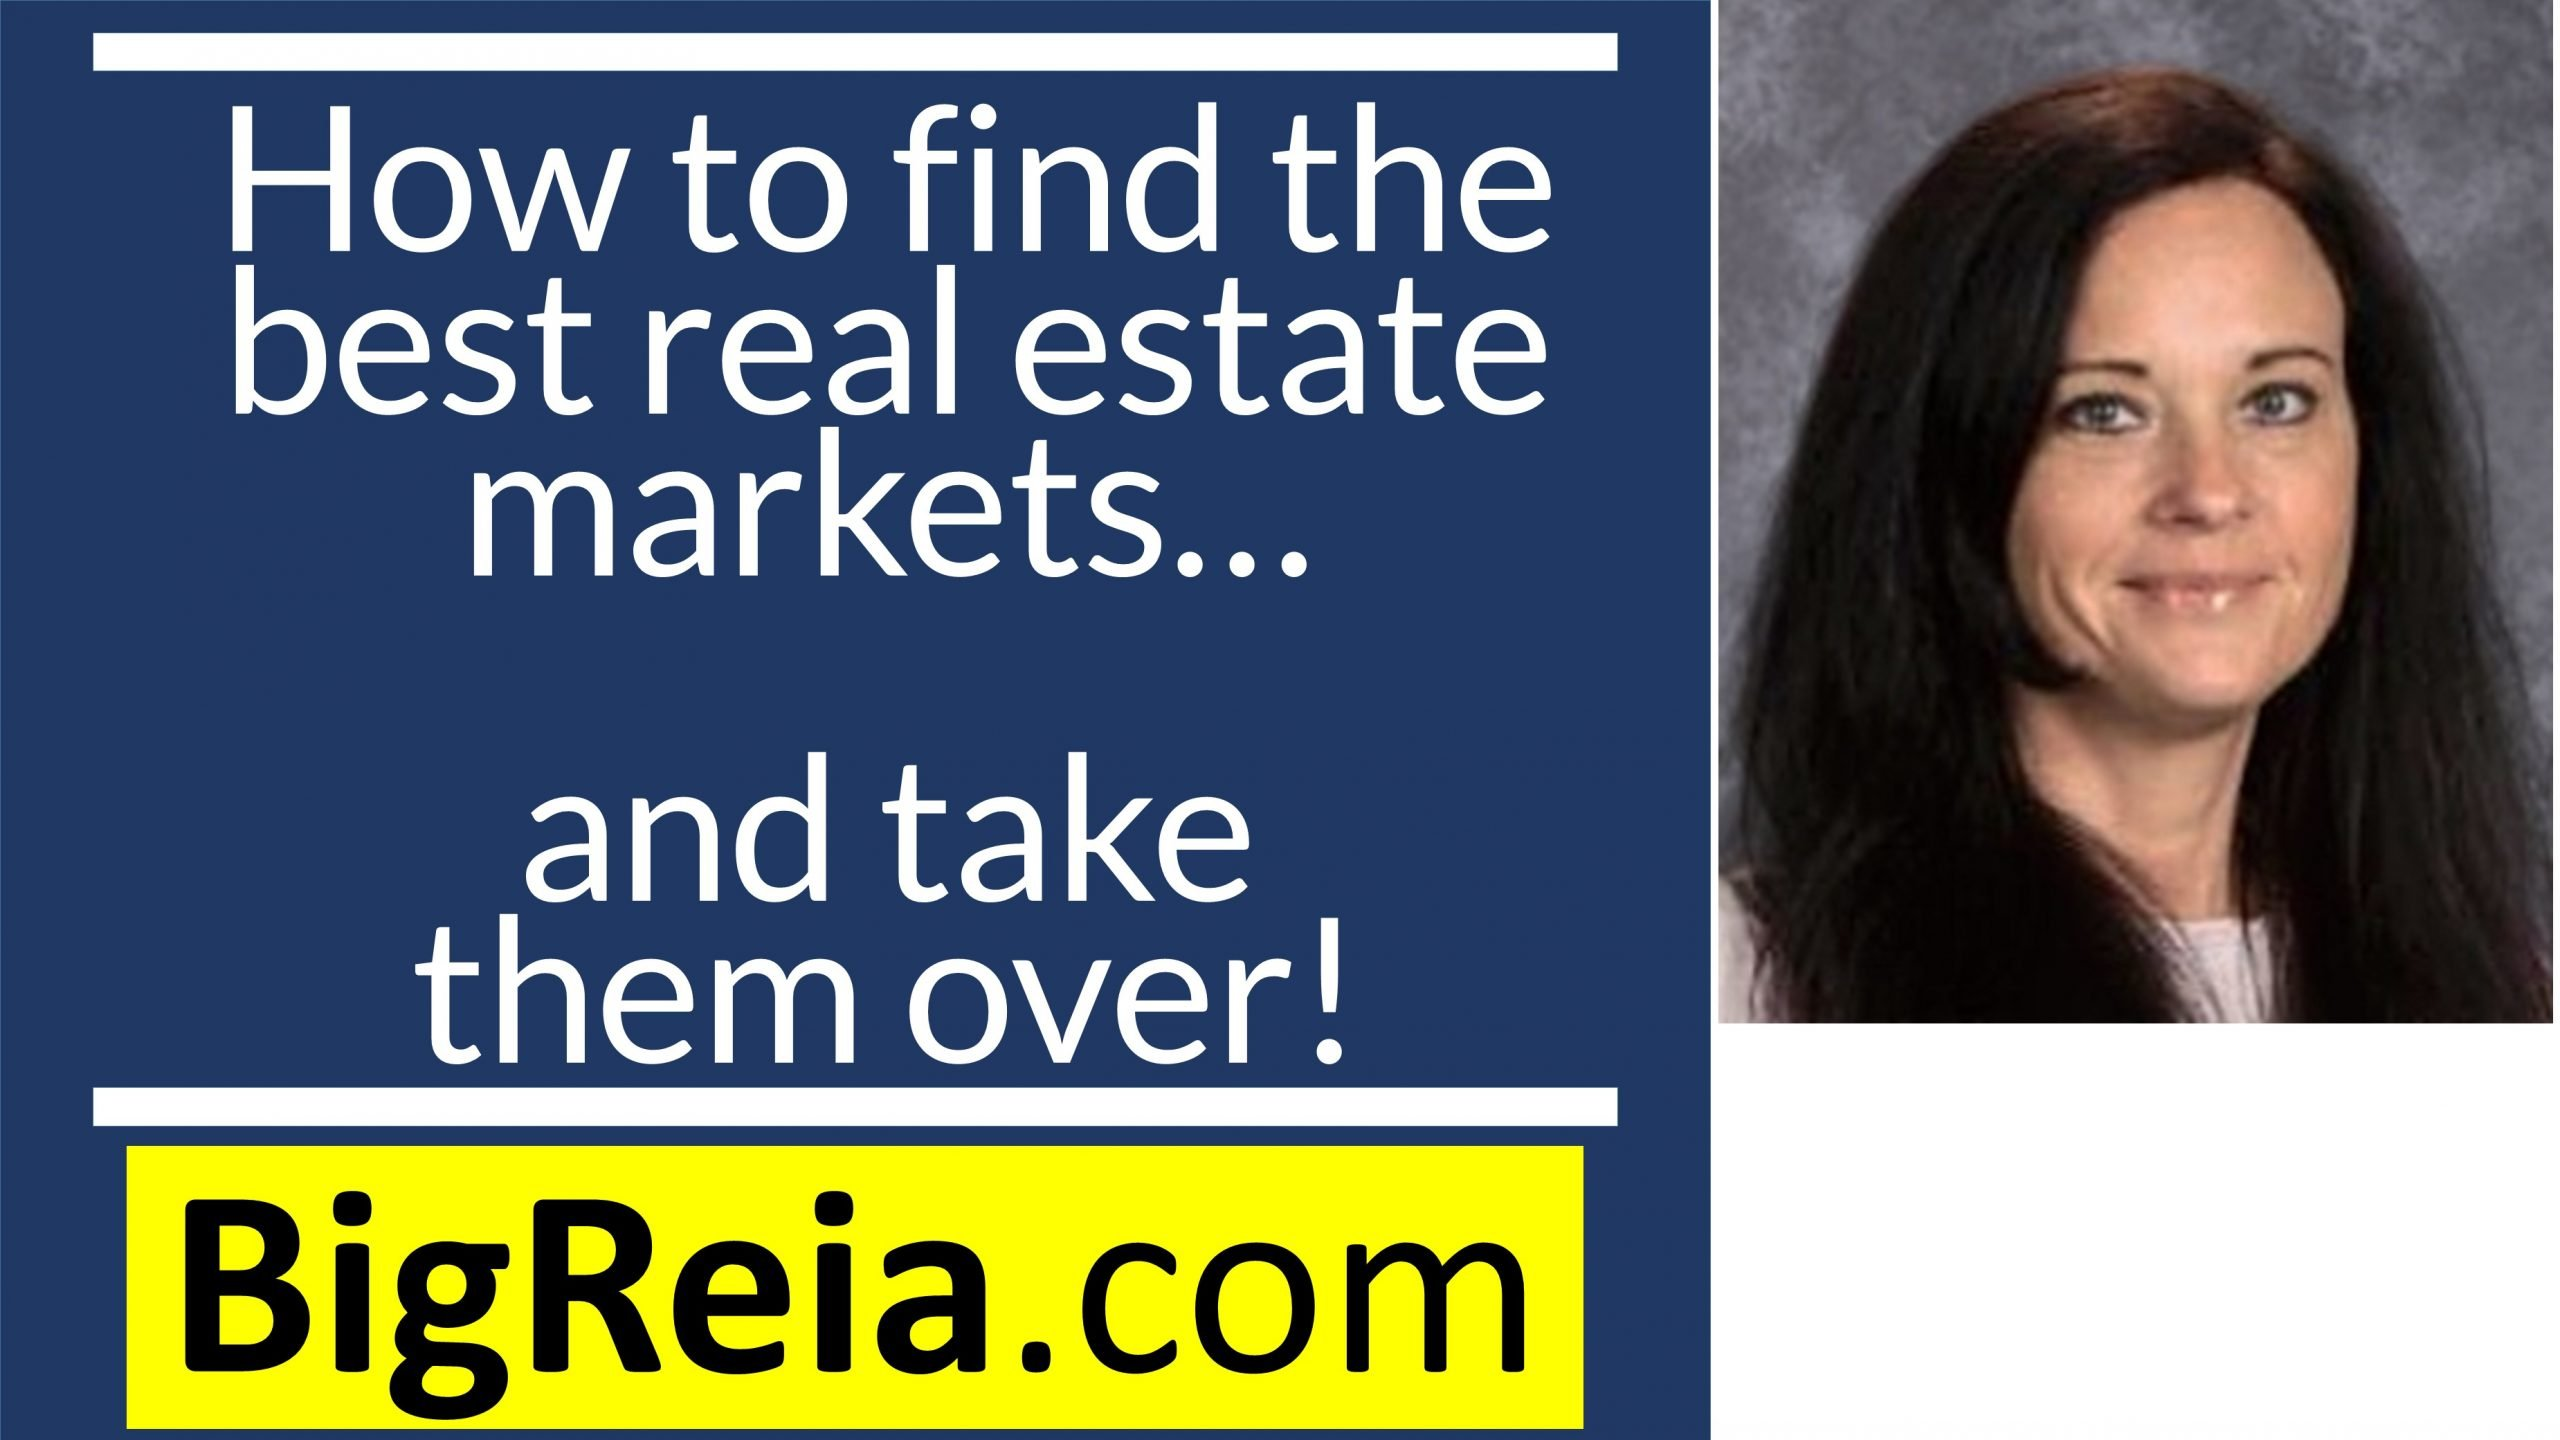 How do you find the best real estate markets and take them over.